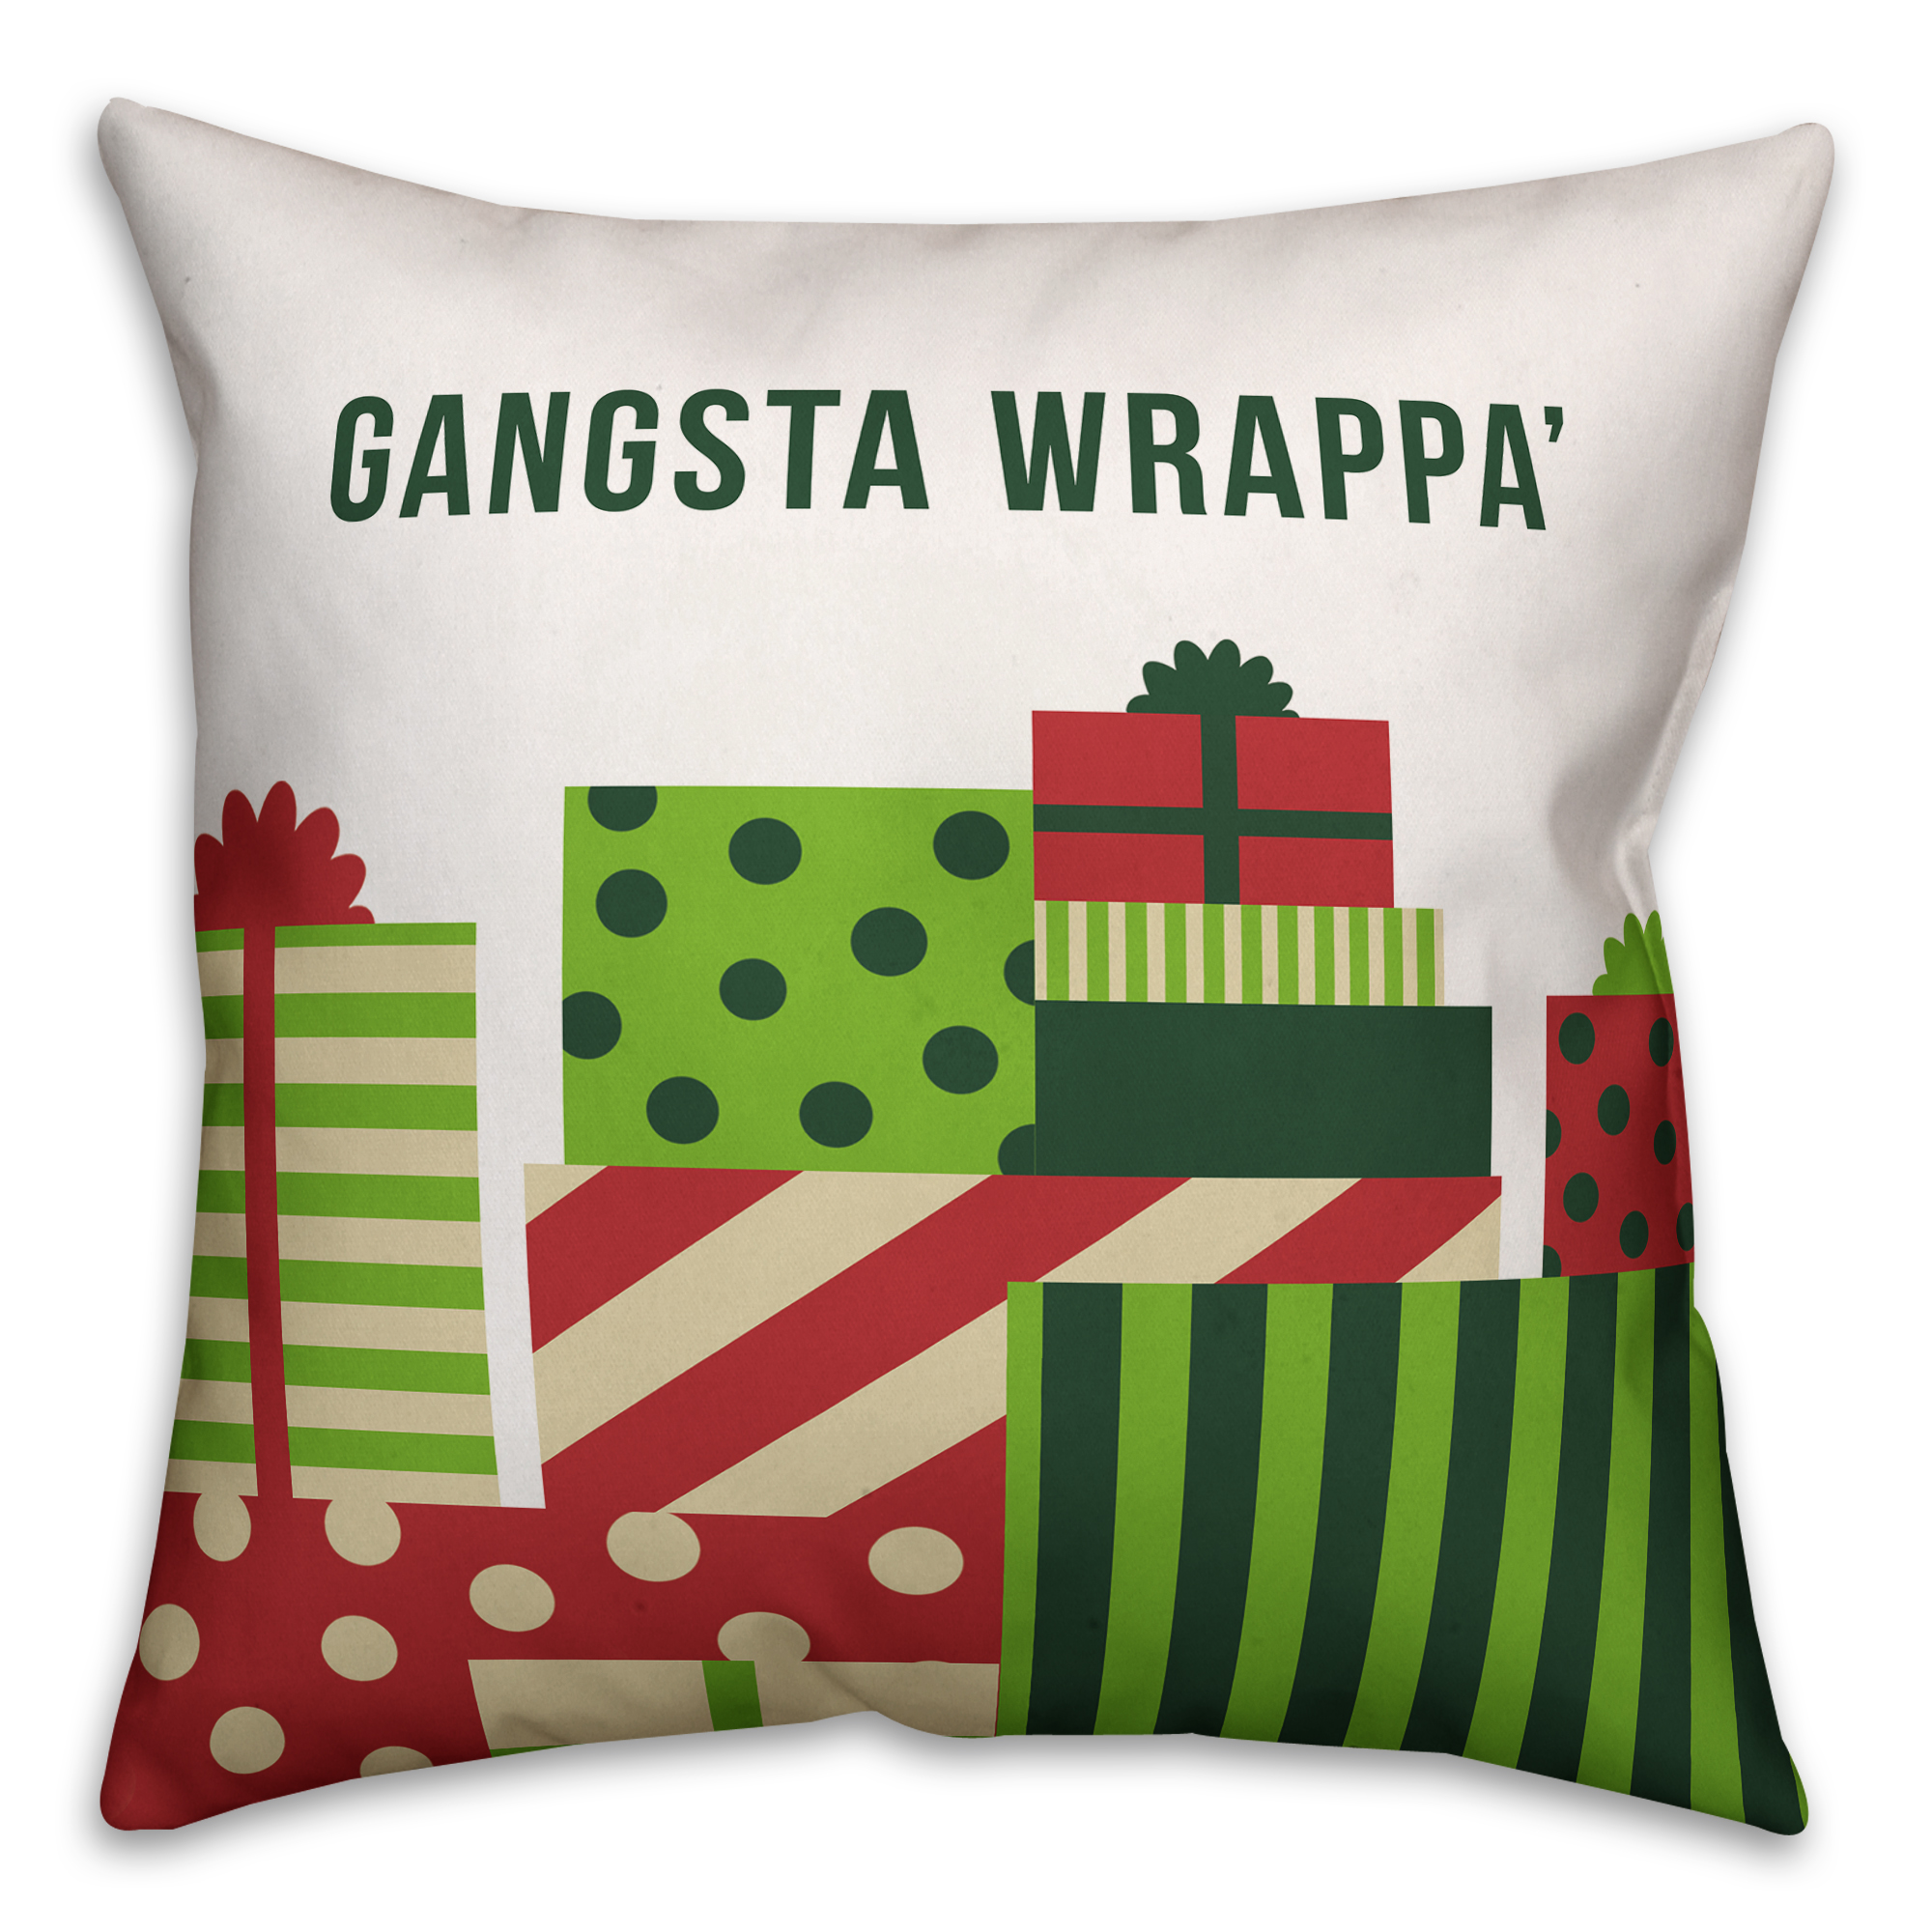 Gangsta Wrappa 16x16 Spun Poly Pillow Cover